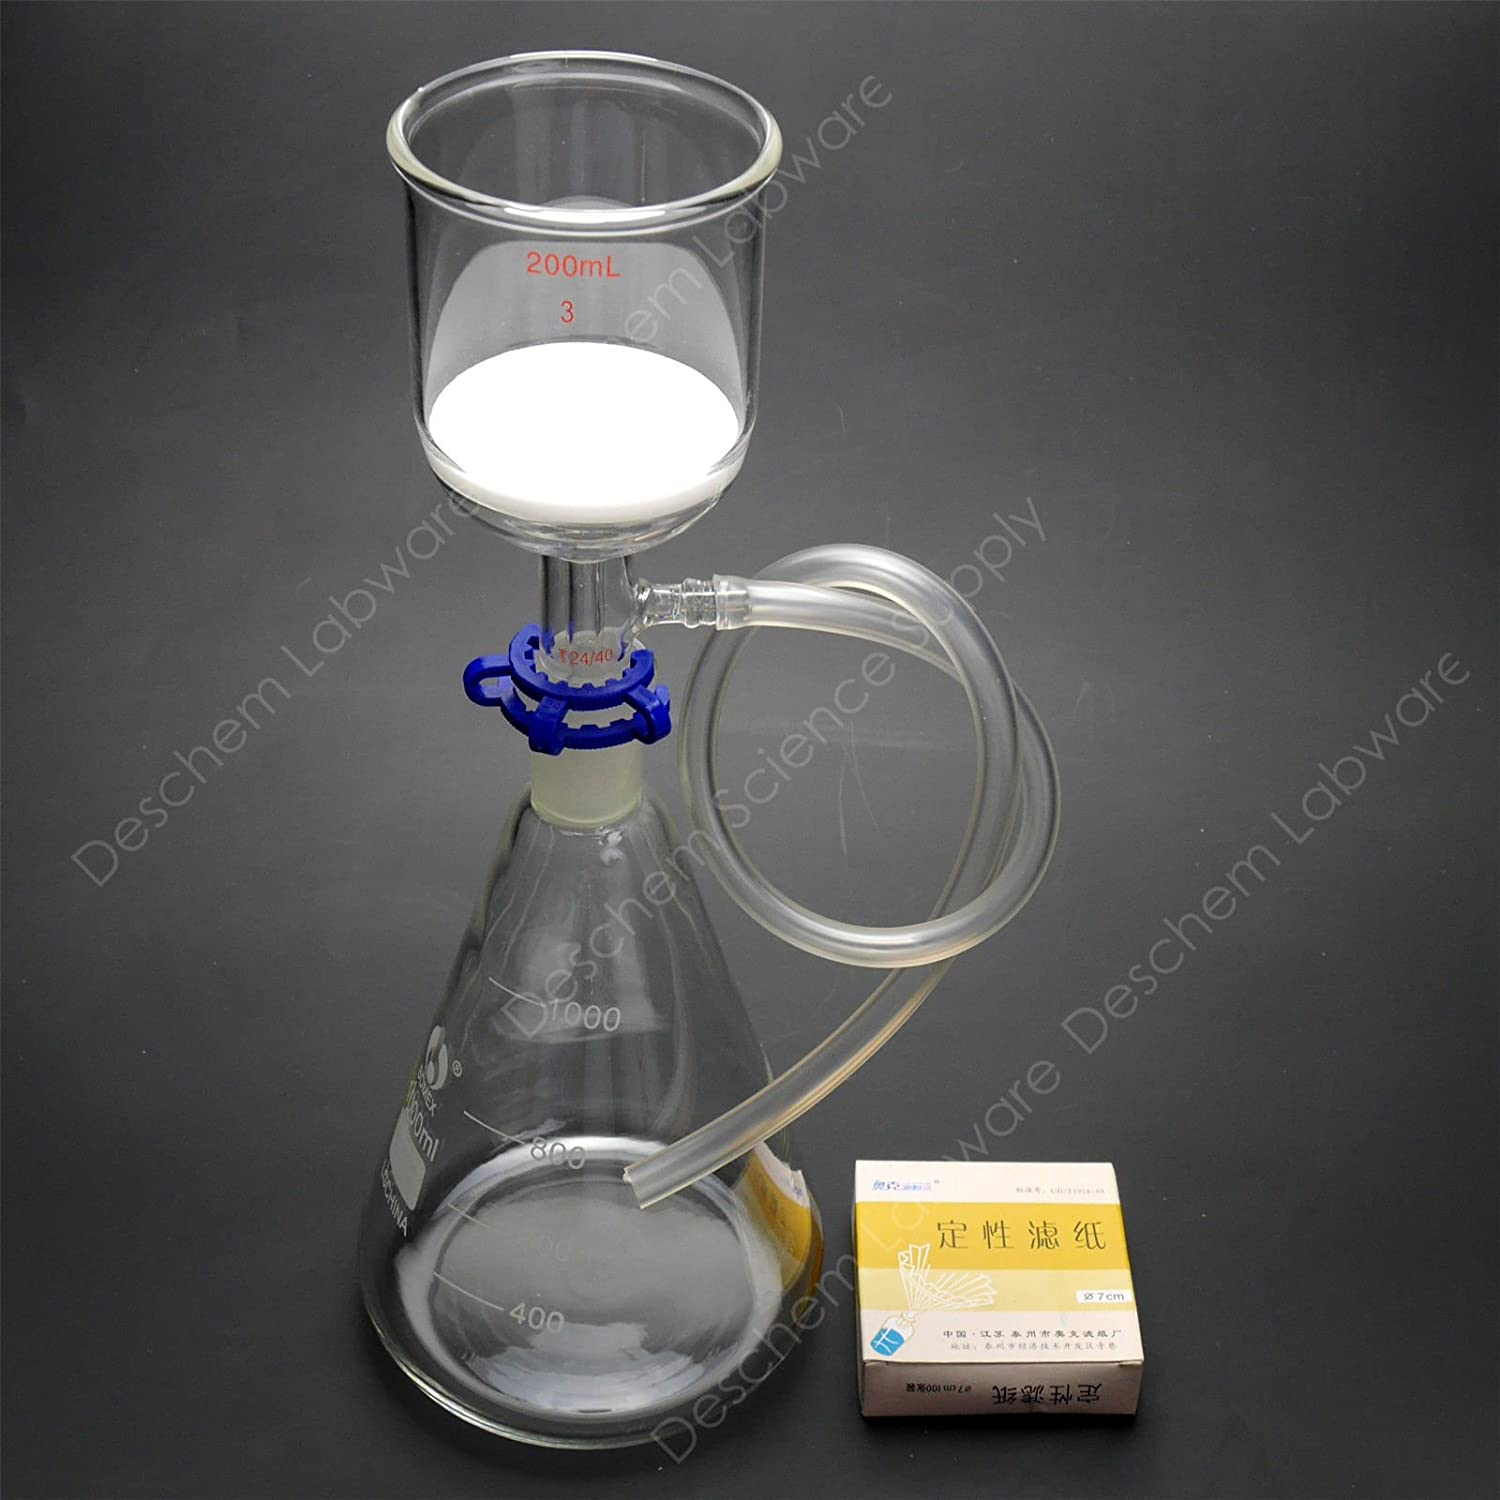 Deschem 1000ml,Suction Filtration Kit,200ml Buchner Funnel,1L Flask,W/70mm Filter Paper